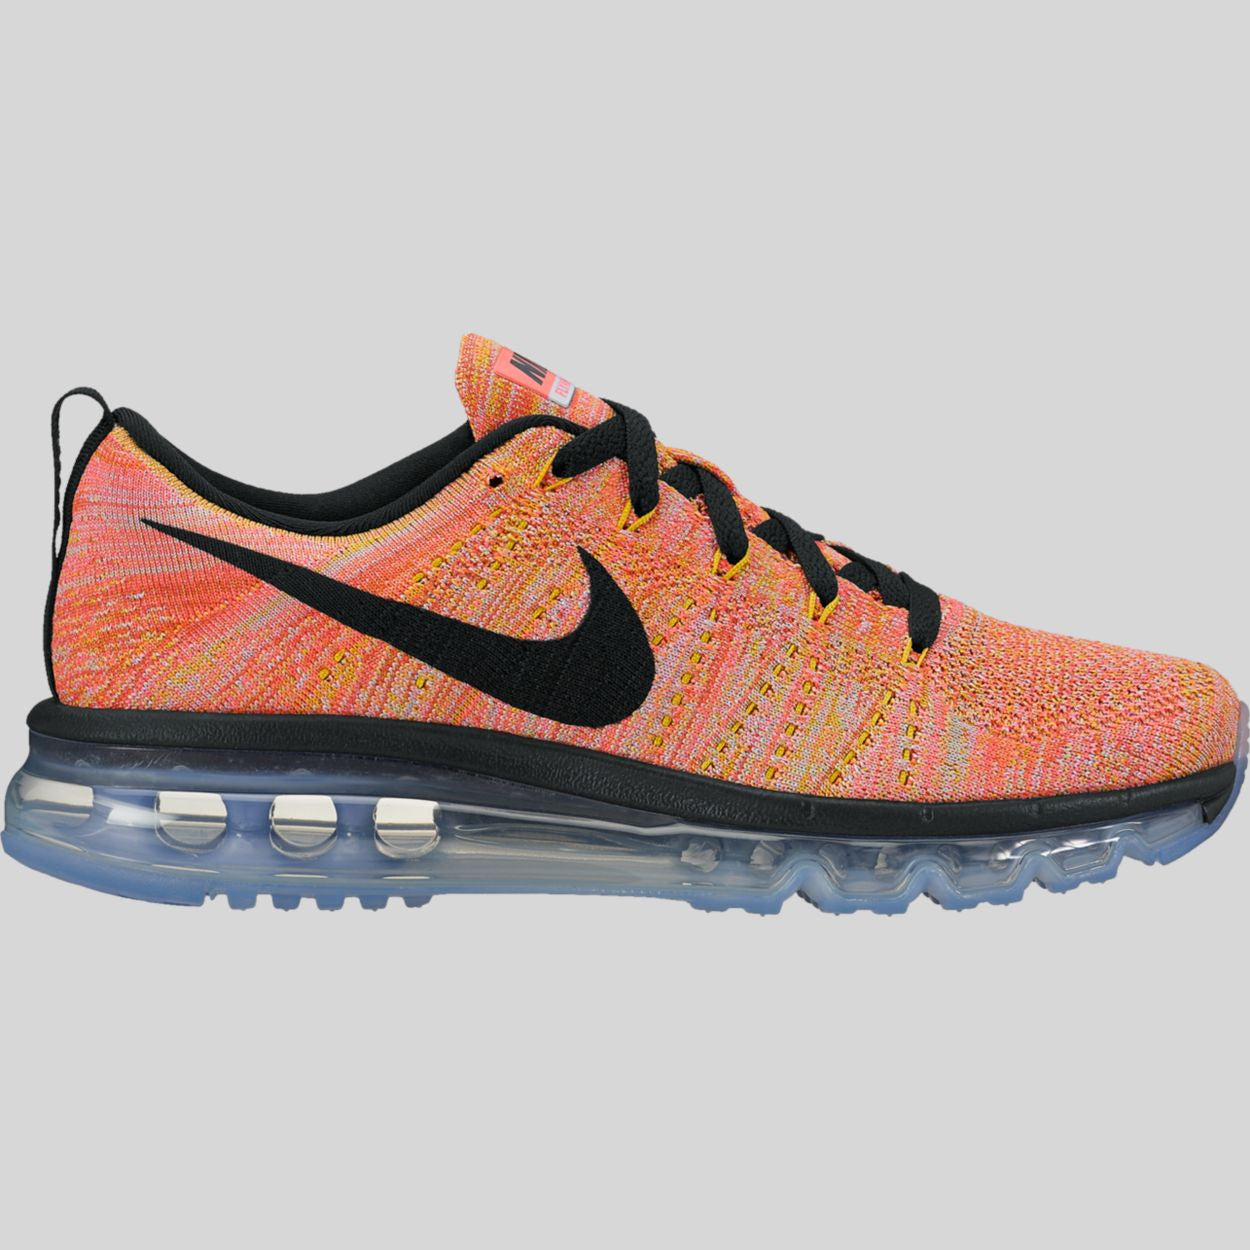 best website b8dde 22333 Nike Wmns Flyknit Max Aluminum Black Hot Punch Electrolime (620659-406)